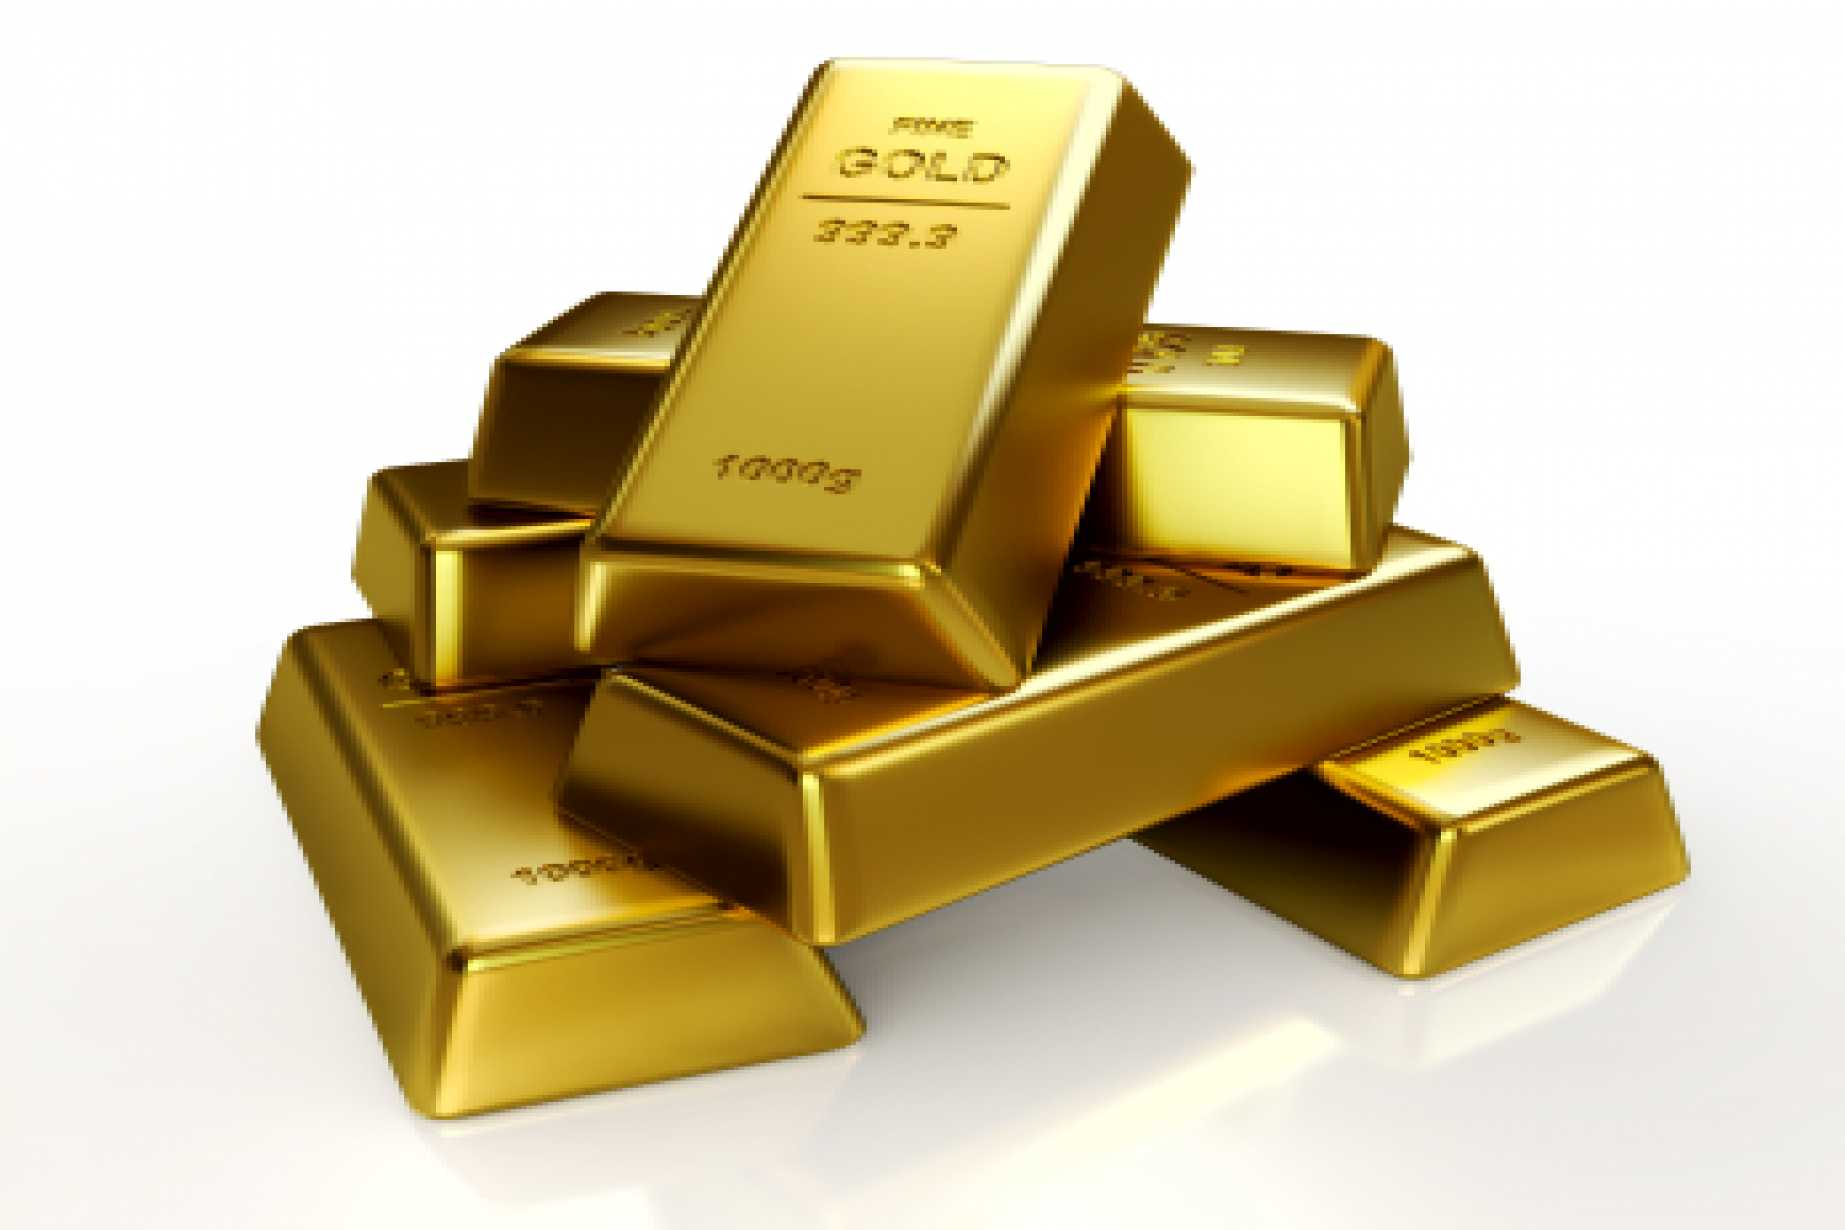 Gold Prices Fall As Risks Fade